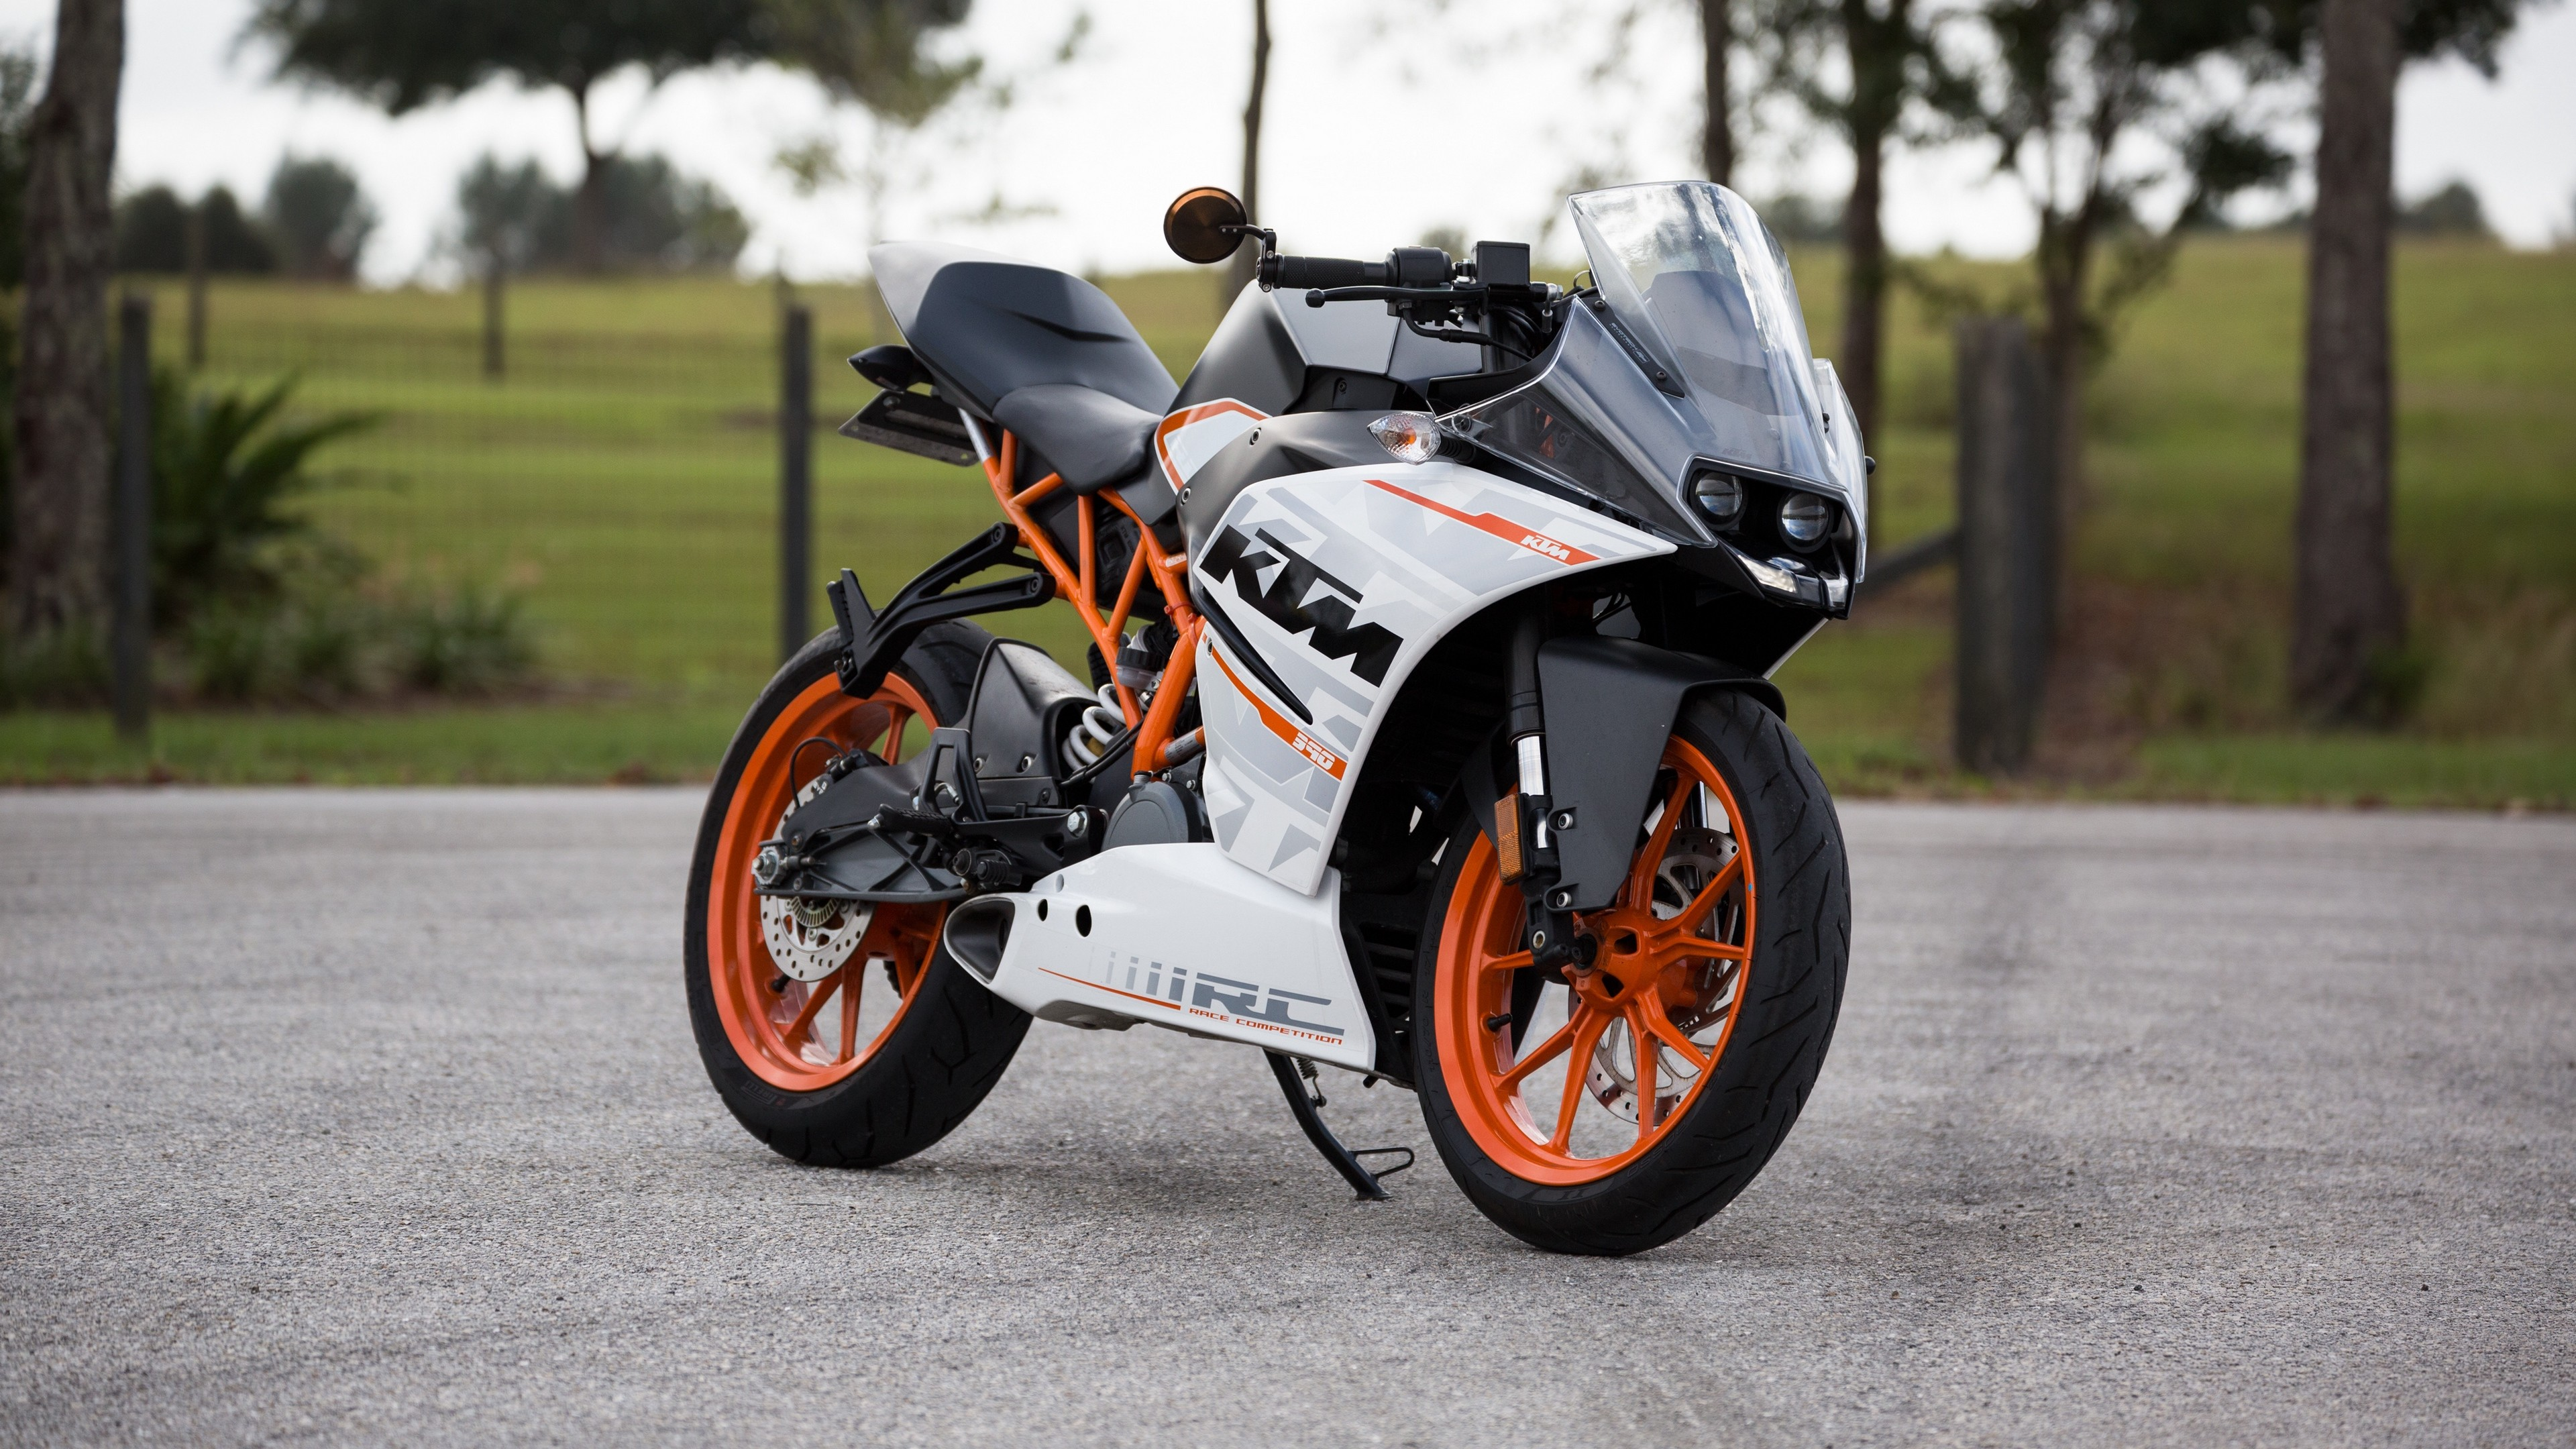 3840x2160  Wallpaper ktm, motorcycle, side view